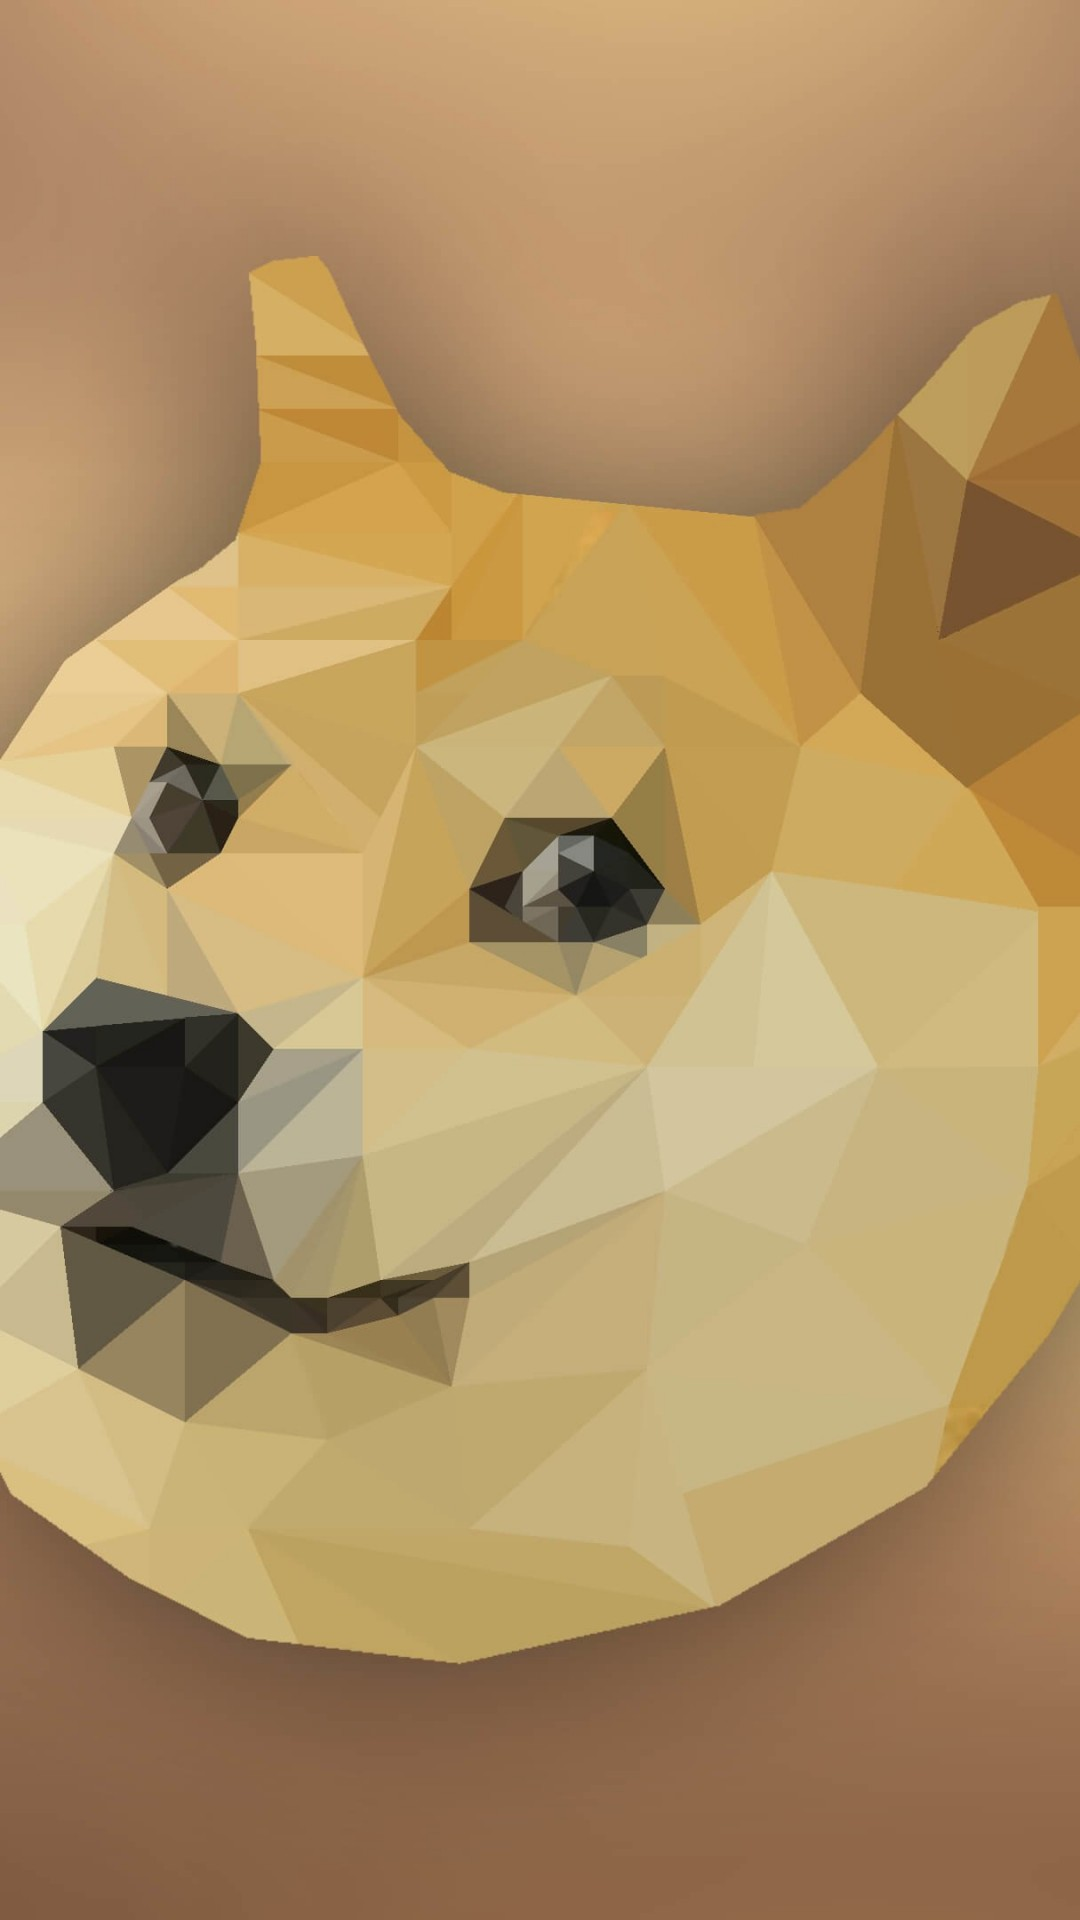 Low Poly Doge Wallpaper for Google Nexus 5